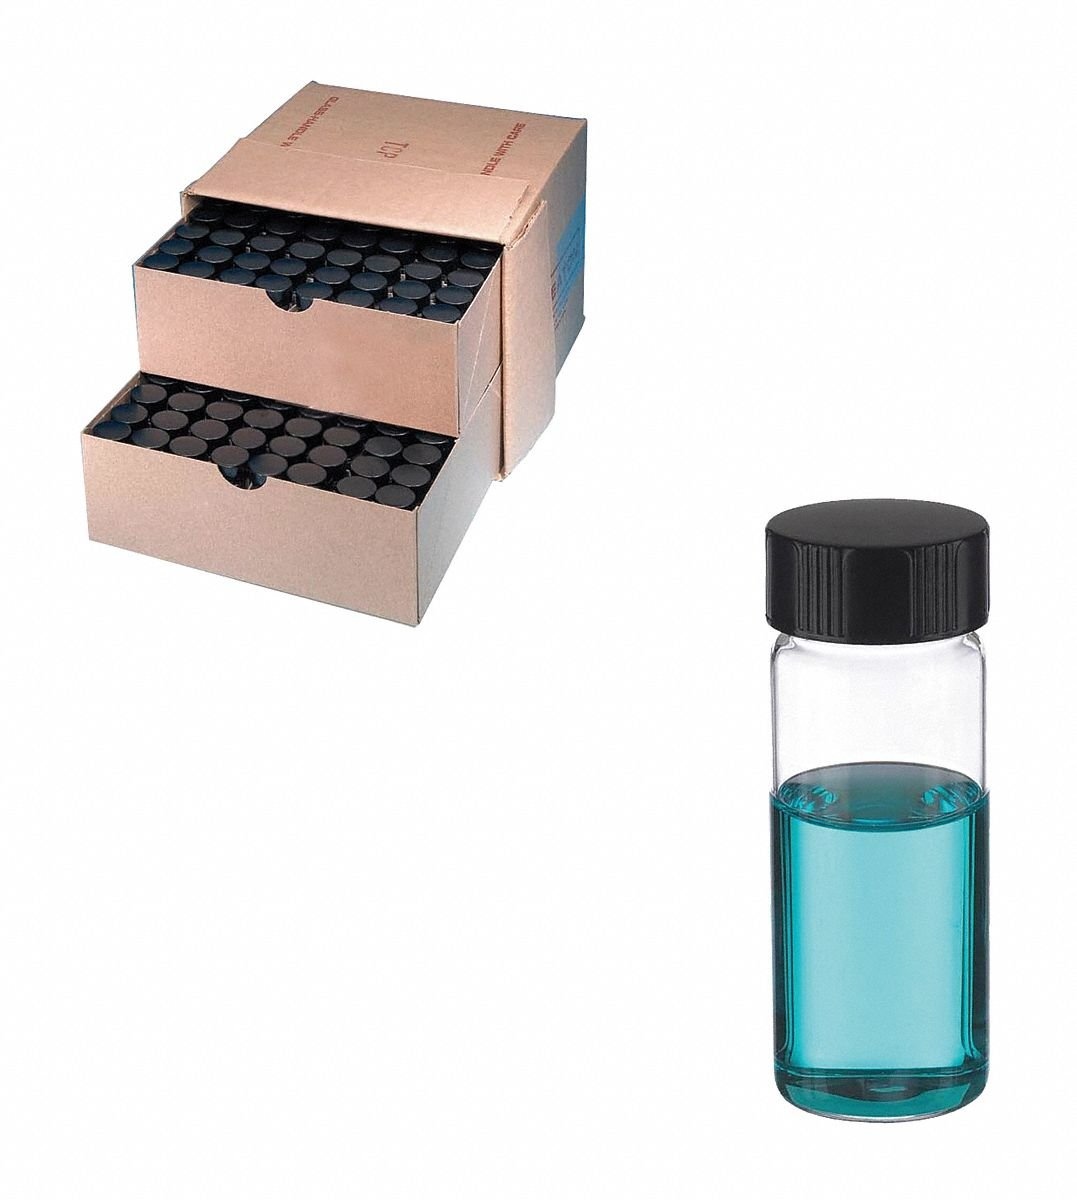 Wheaton Science Products 225289 Clear Borosilicate Glass Sample Vial in Lab File with 24''-400'' Phenolic Rubber-Lined Screw Cap, 25 mL Capacity, 28 mm Diameter x 73 mm Height (Pack of 72)